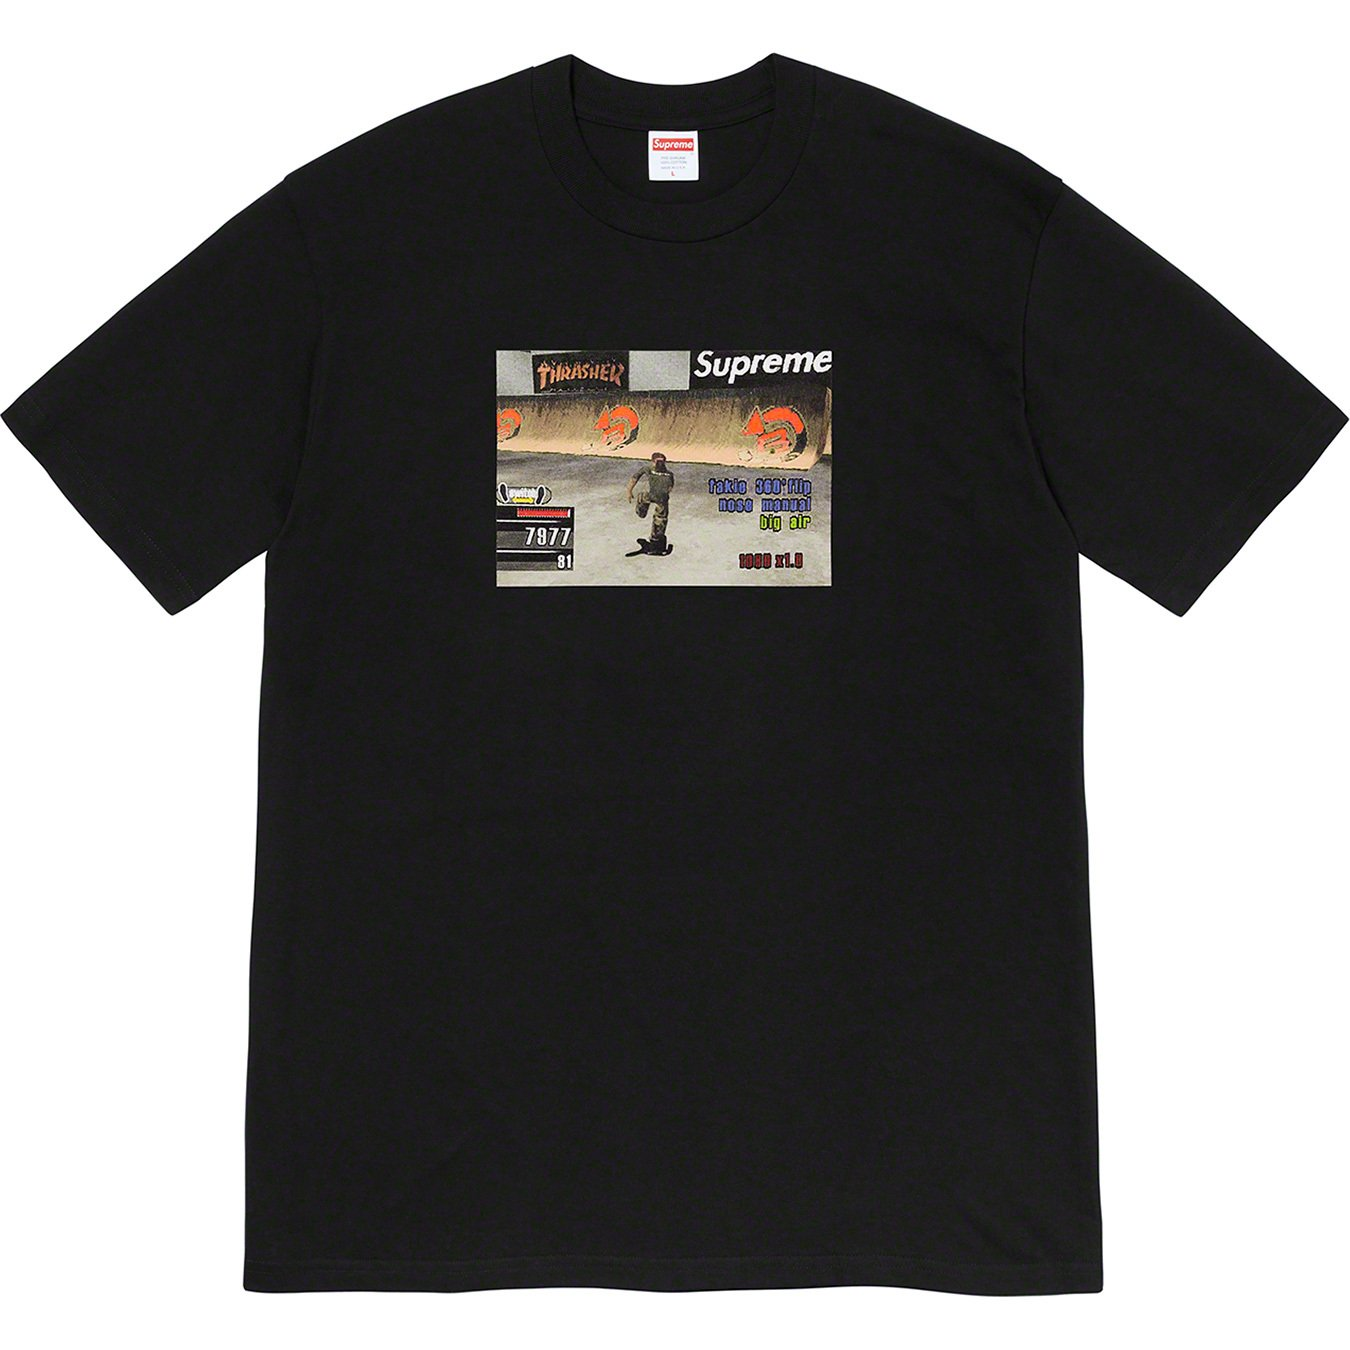 supreme-thrasher-21aw-21fw-collaboration-release-20210925-week5-game-tee